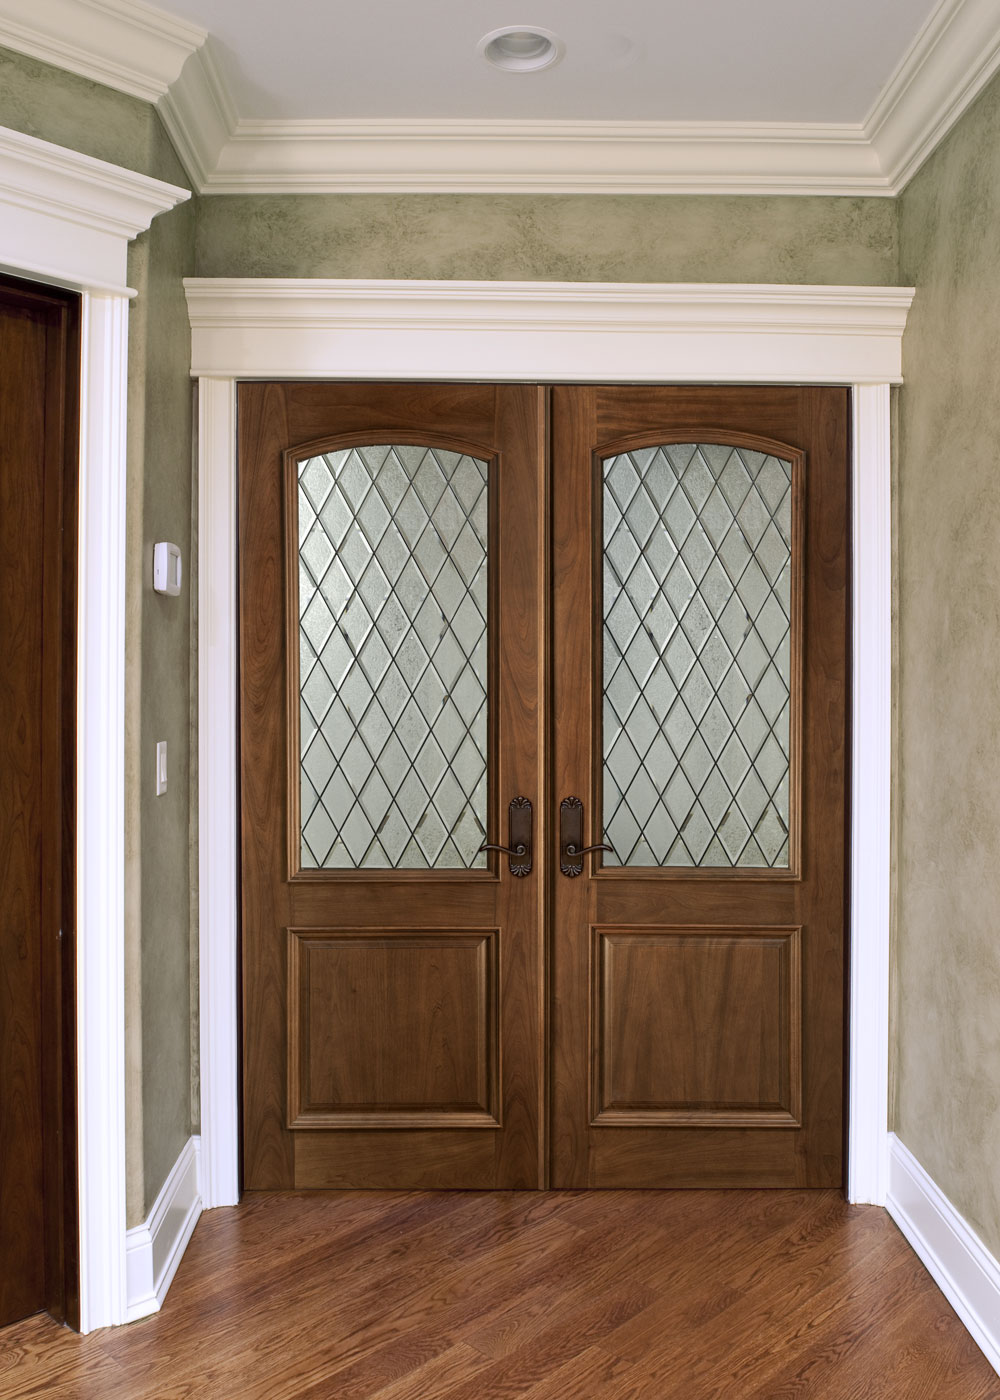 10 benefits of double door designs